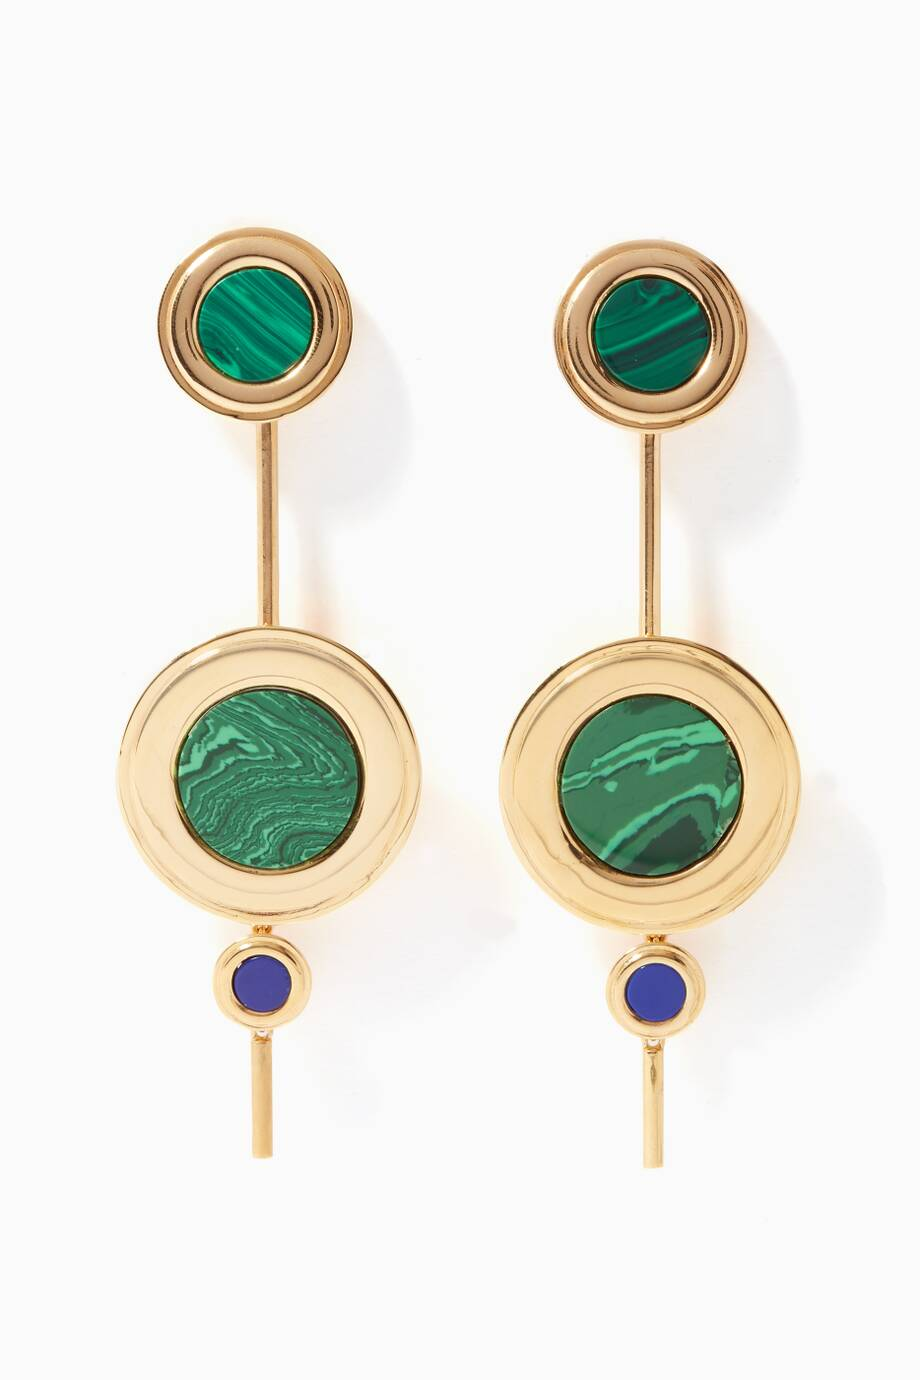 Joanna Laura Constantine Tribal Statement Earrings in Gold-Plated Brass with Lapis Lazuli and Malachite